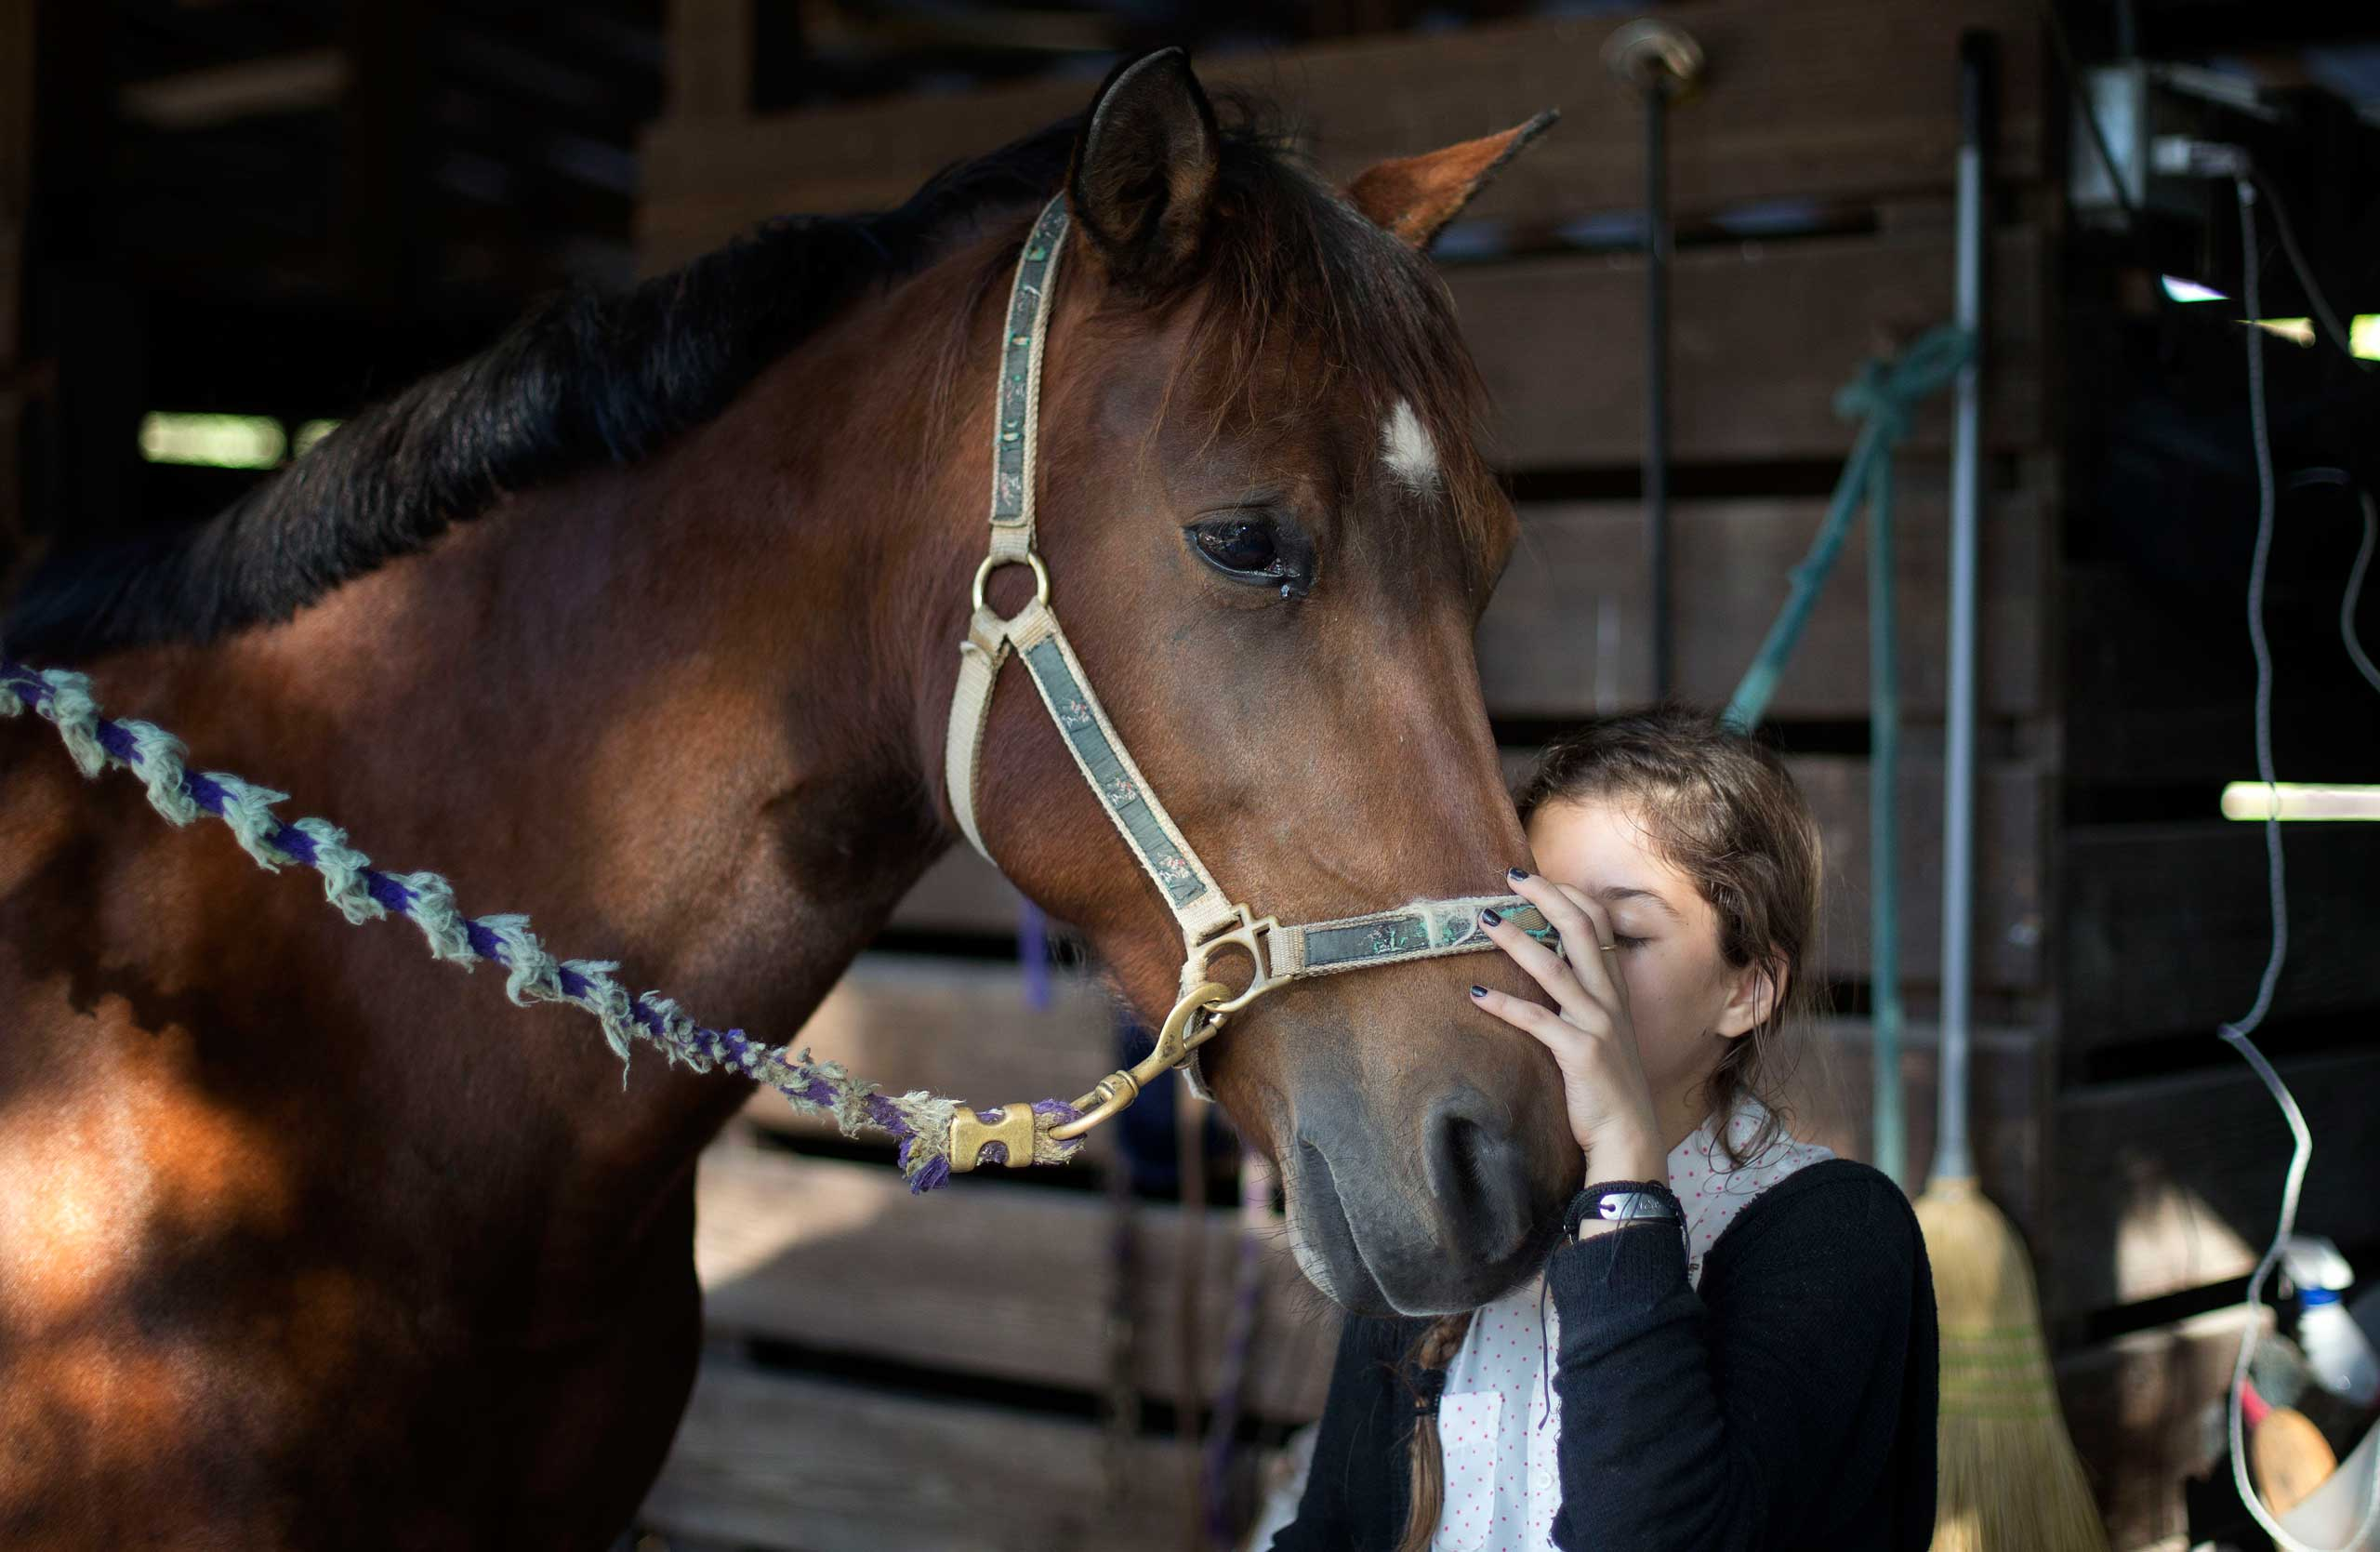 Dec. 16, 2014. Ava Exelbirt hugs one of the remaining horses at the Masterpiece Equestrian Center in Davie, Fla., Ava lost the horse she rode to contaminated feed. There's nothing that can be done to save 18 poisoned horses at a Florida equestrian center, so their young riders are holding  spa days  to brush their manes and tails, paint their hooves, feed them hay and pet their noses to keep the animals comfortable in their last days.